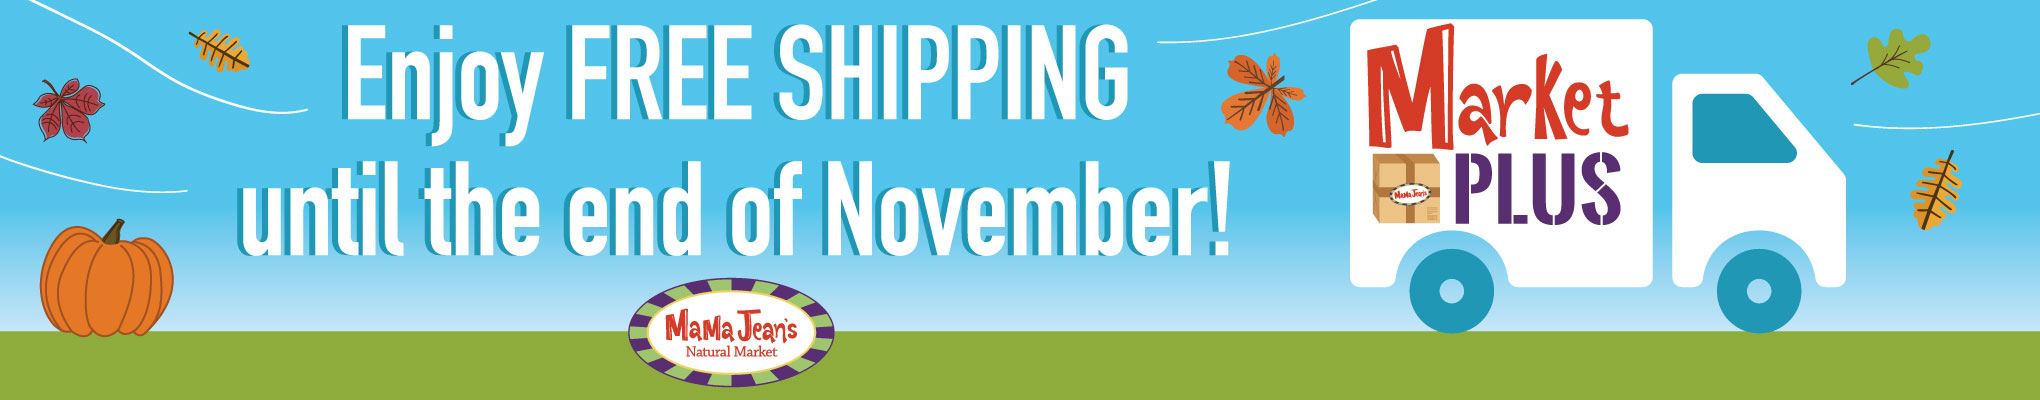 Market Plus Free Shipping In October